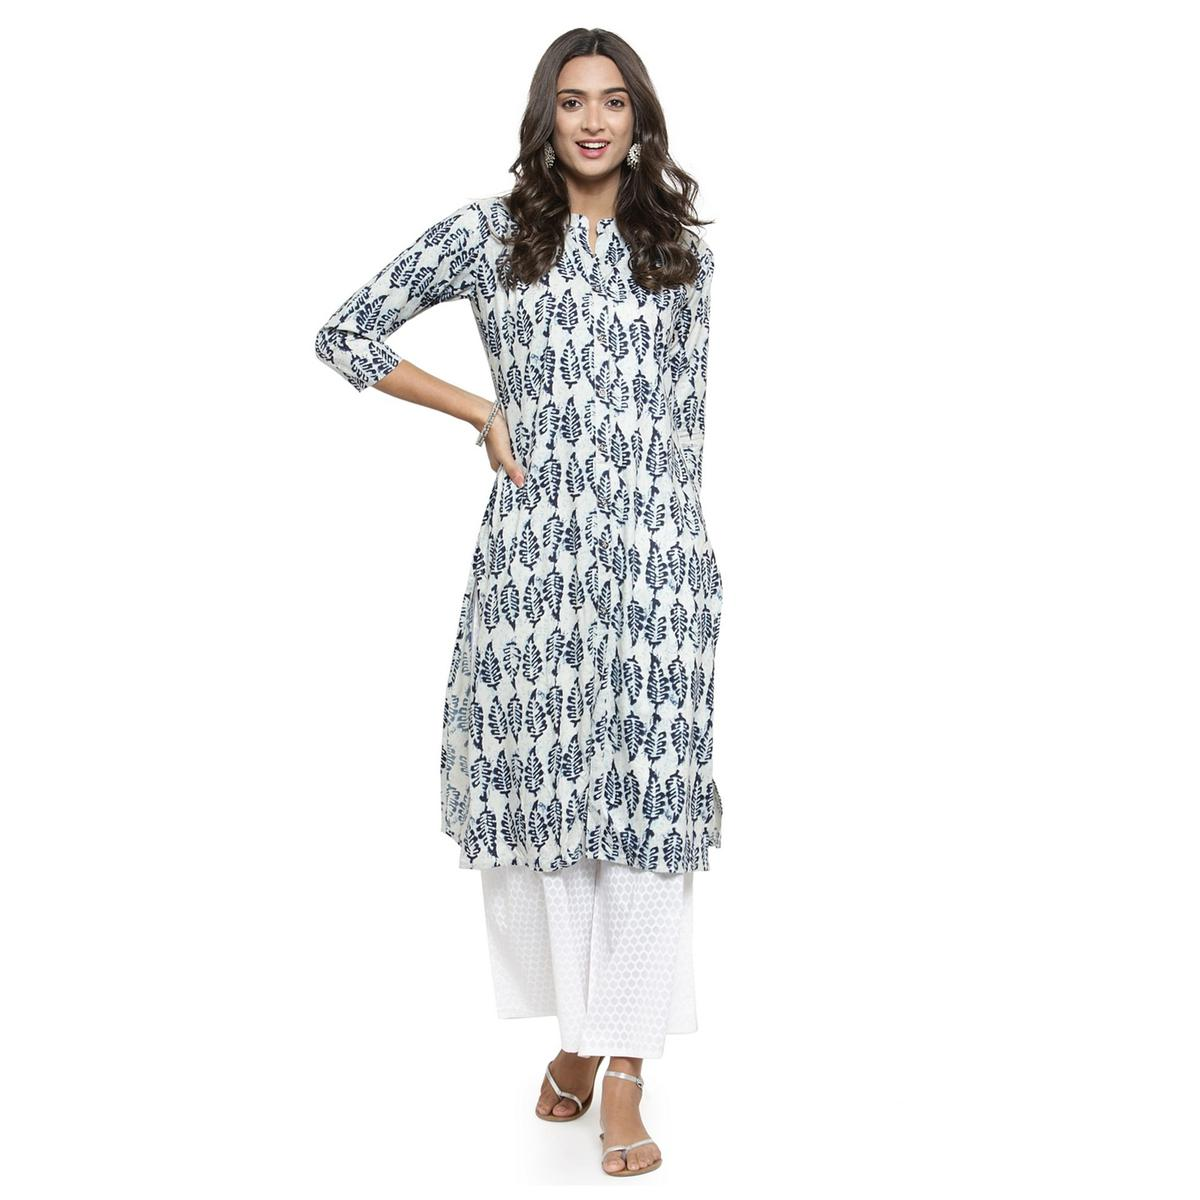 Blissful White Colored Casual Printed Cotton Kurti